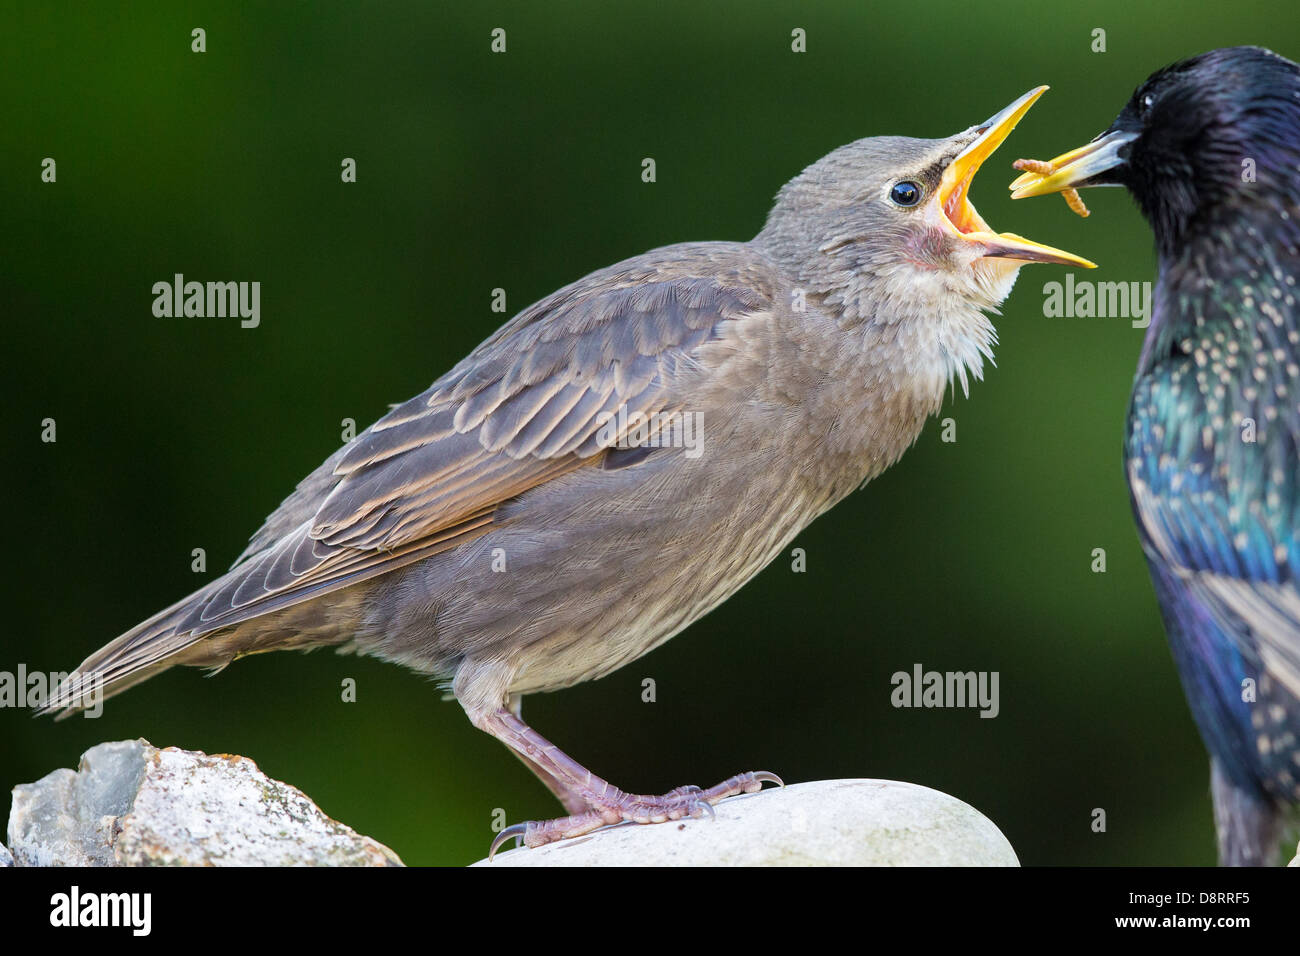 Close-up of a young starling (sturnus vulgaris) being fed by its parent, soft-focus green vegetation background - Stock Image